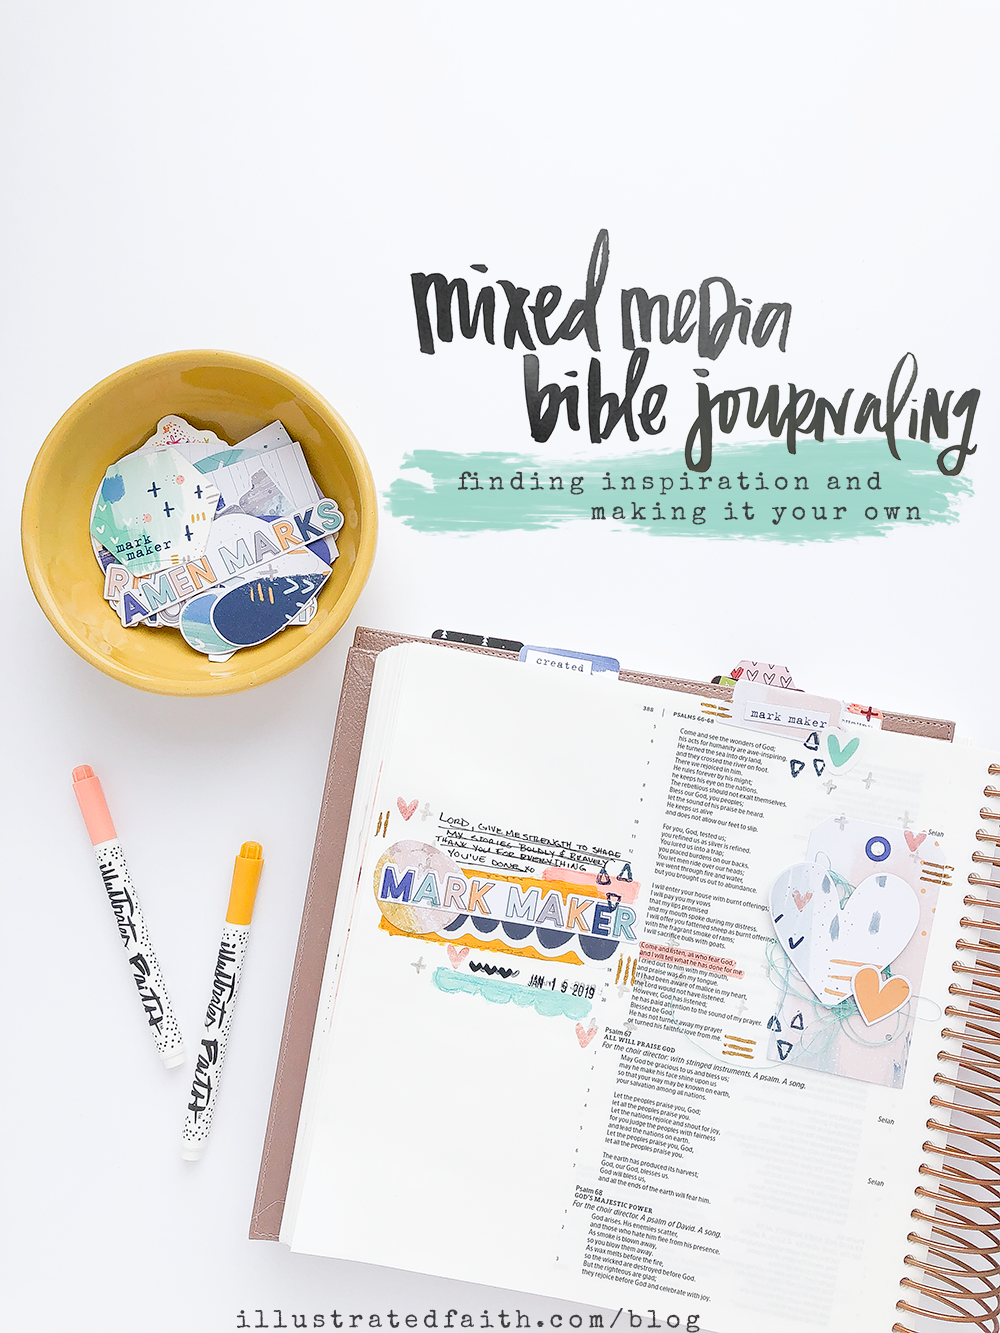 Mixed Media Bible Journaling Tutorial by Heather Greenwood - Making Inspiration Your Own, finding inspiration from Shanna Noel and Elaine Davis | Illustrated Faith Mark Maker Devotional Kit